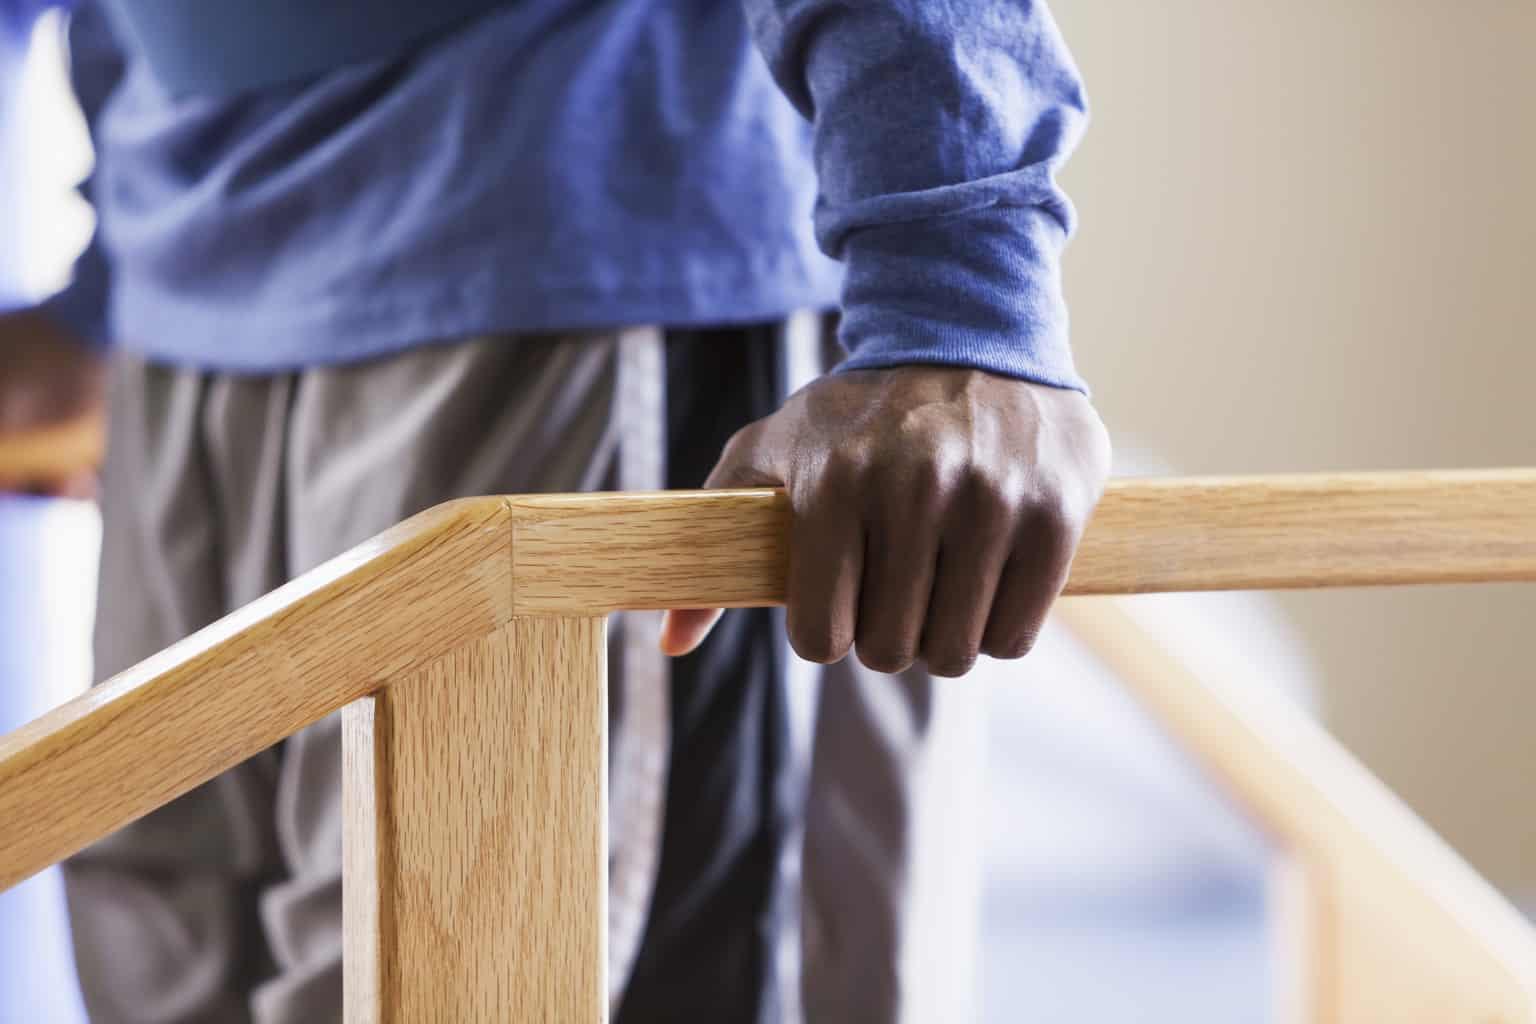 Close up of an African American man using a physical therapy exercise staircase.  It is a cropped view of his midsection, with his hand grasping the railing of the staircase.